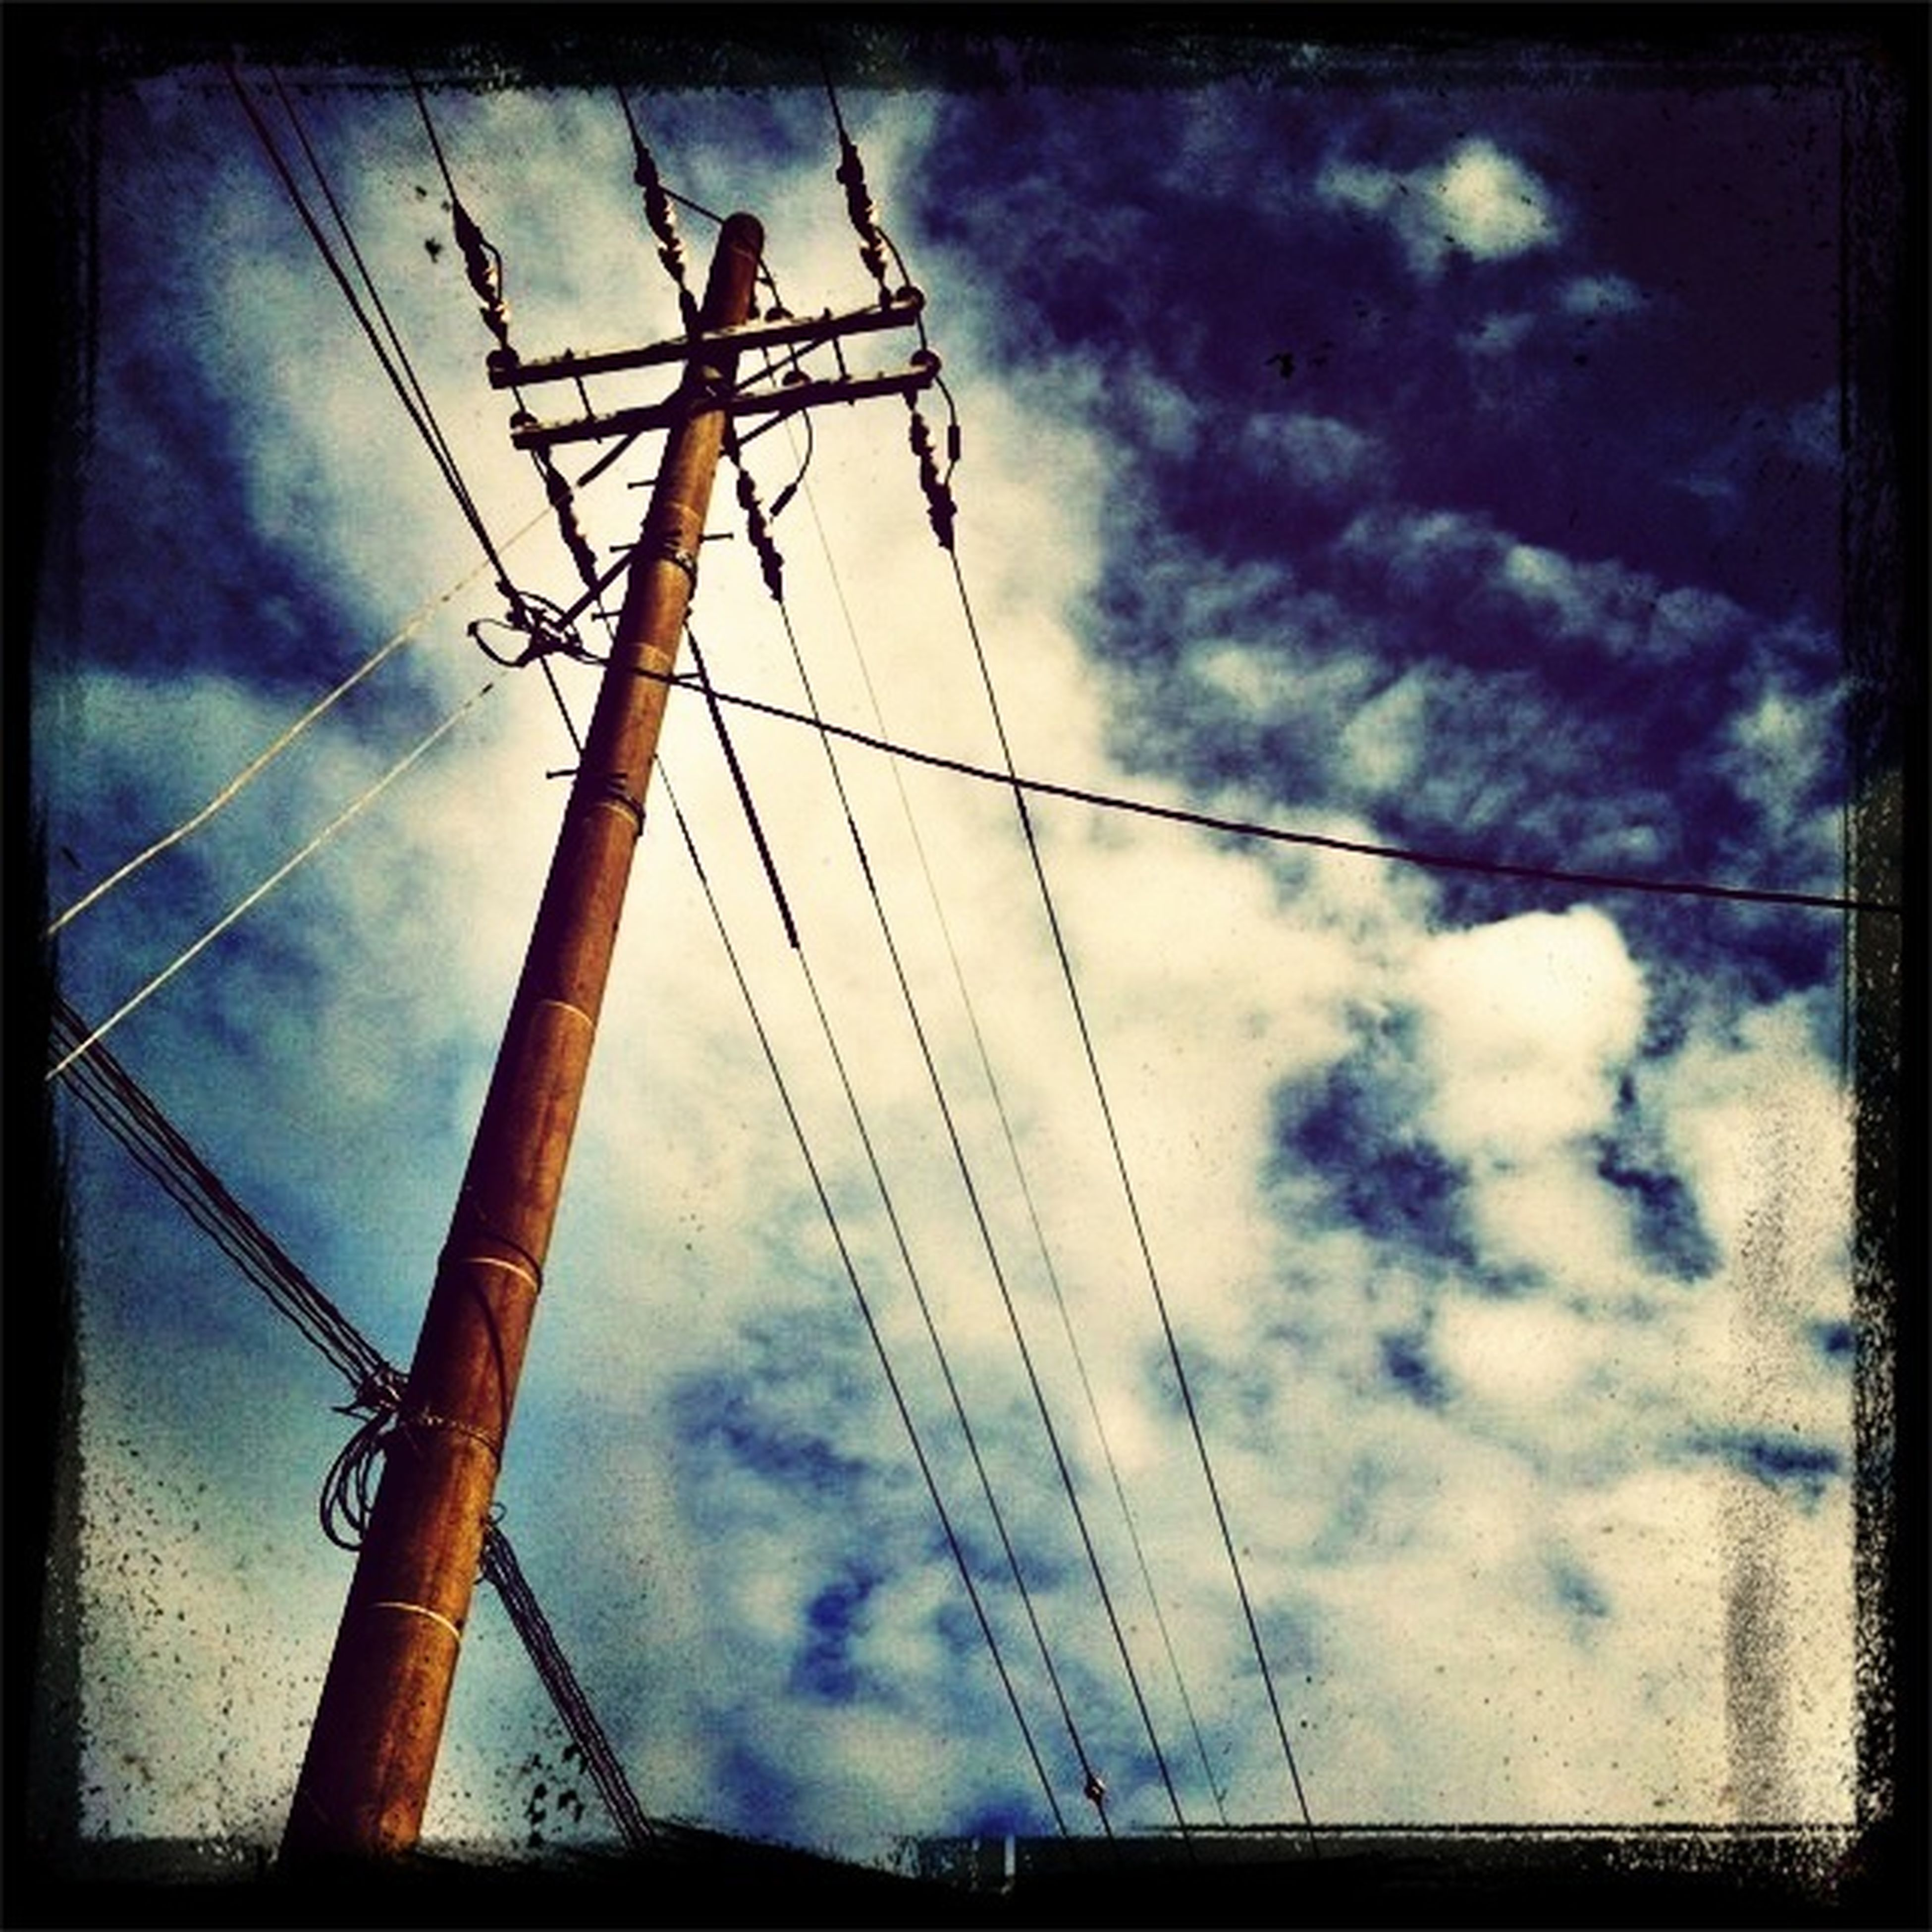 power line, power supply, electricity pylon, transfer print, electricity, sky, low angle view, fuel and power generation, technology, connection, cloud - sky, cable, auto post production filter, cloudy, silhouette, cloud, crane - construction machinery, construction site, development, power cable